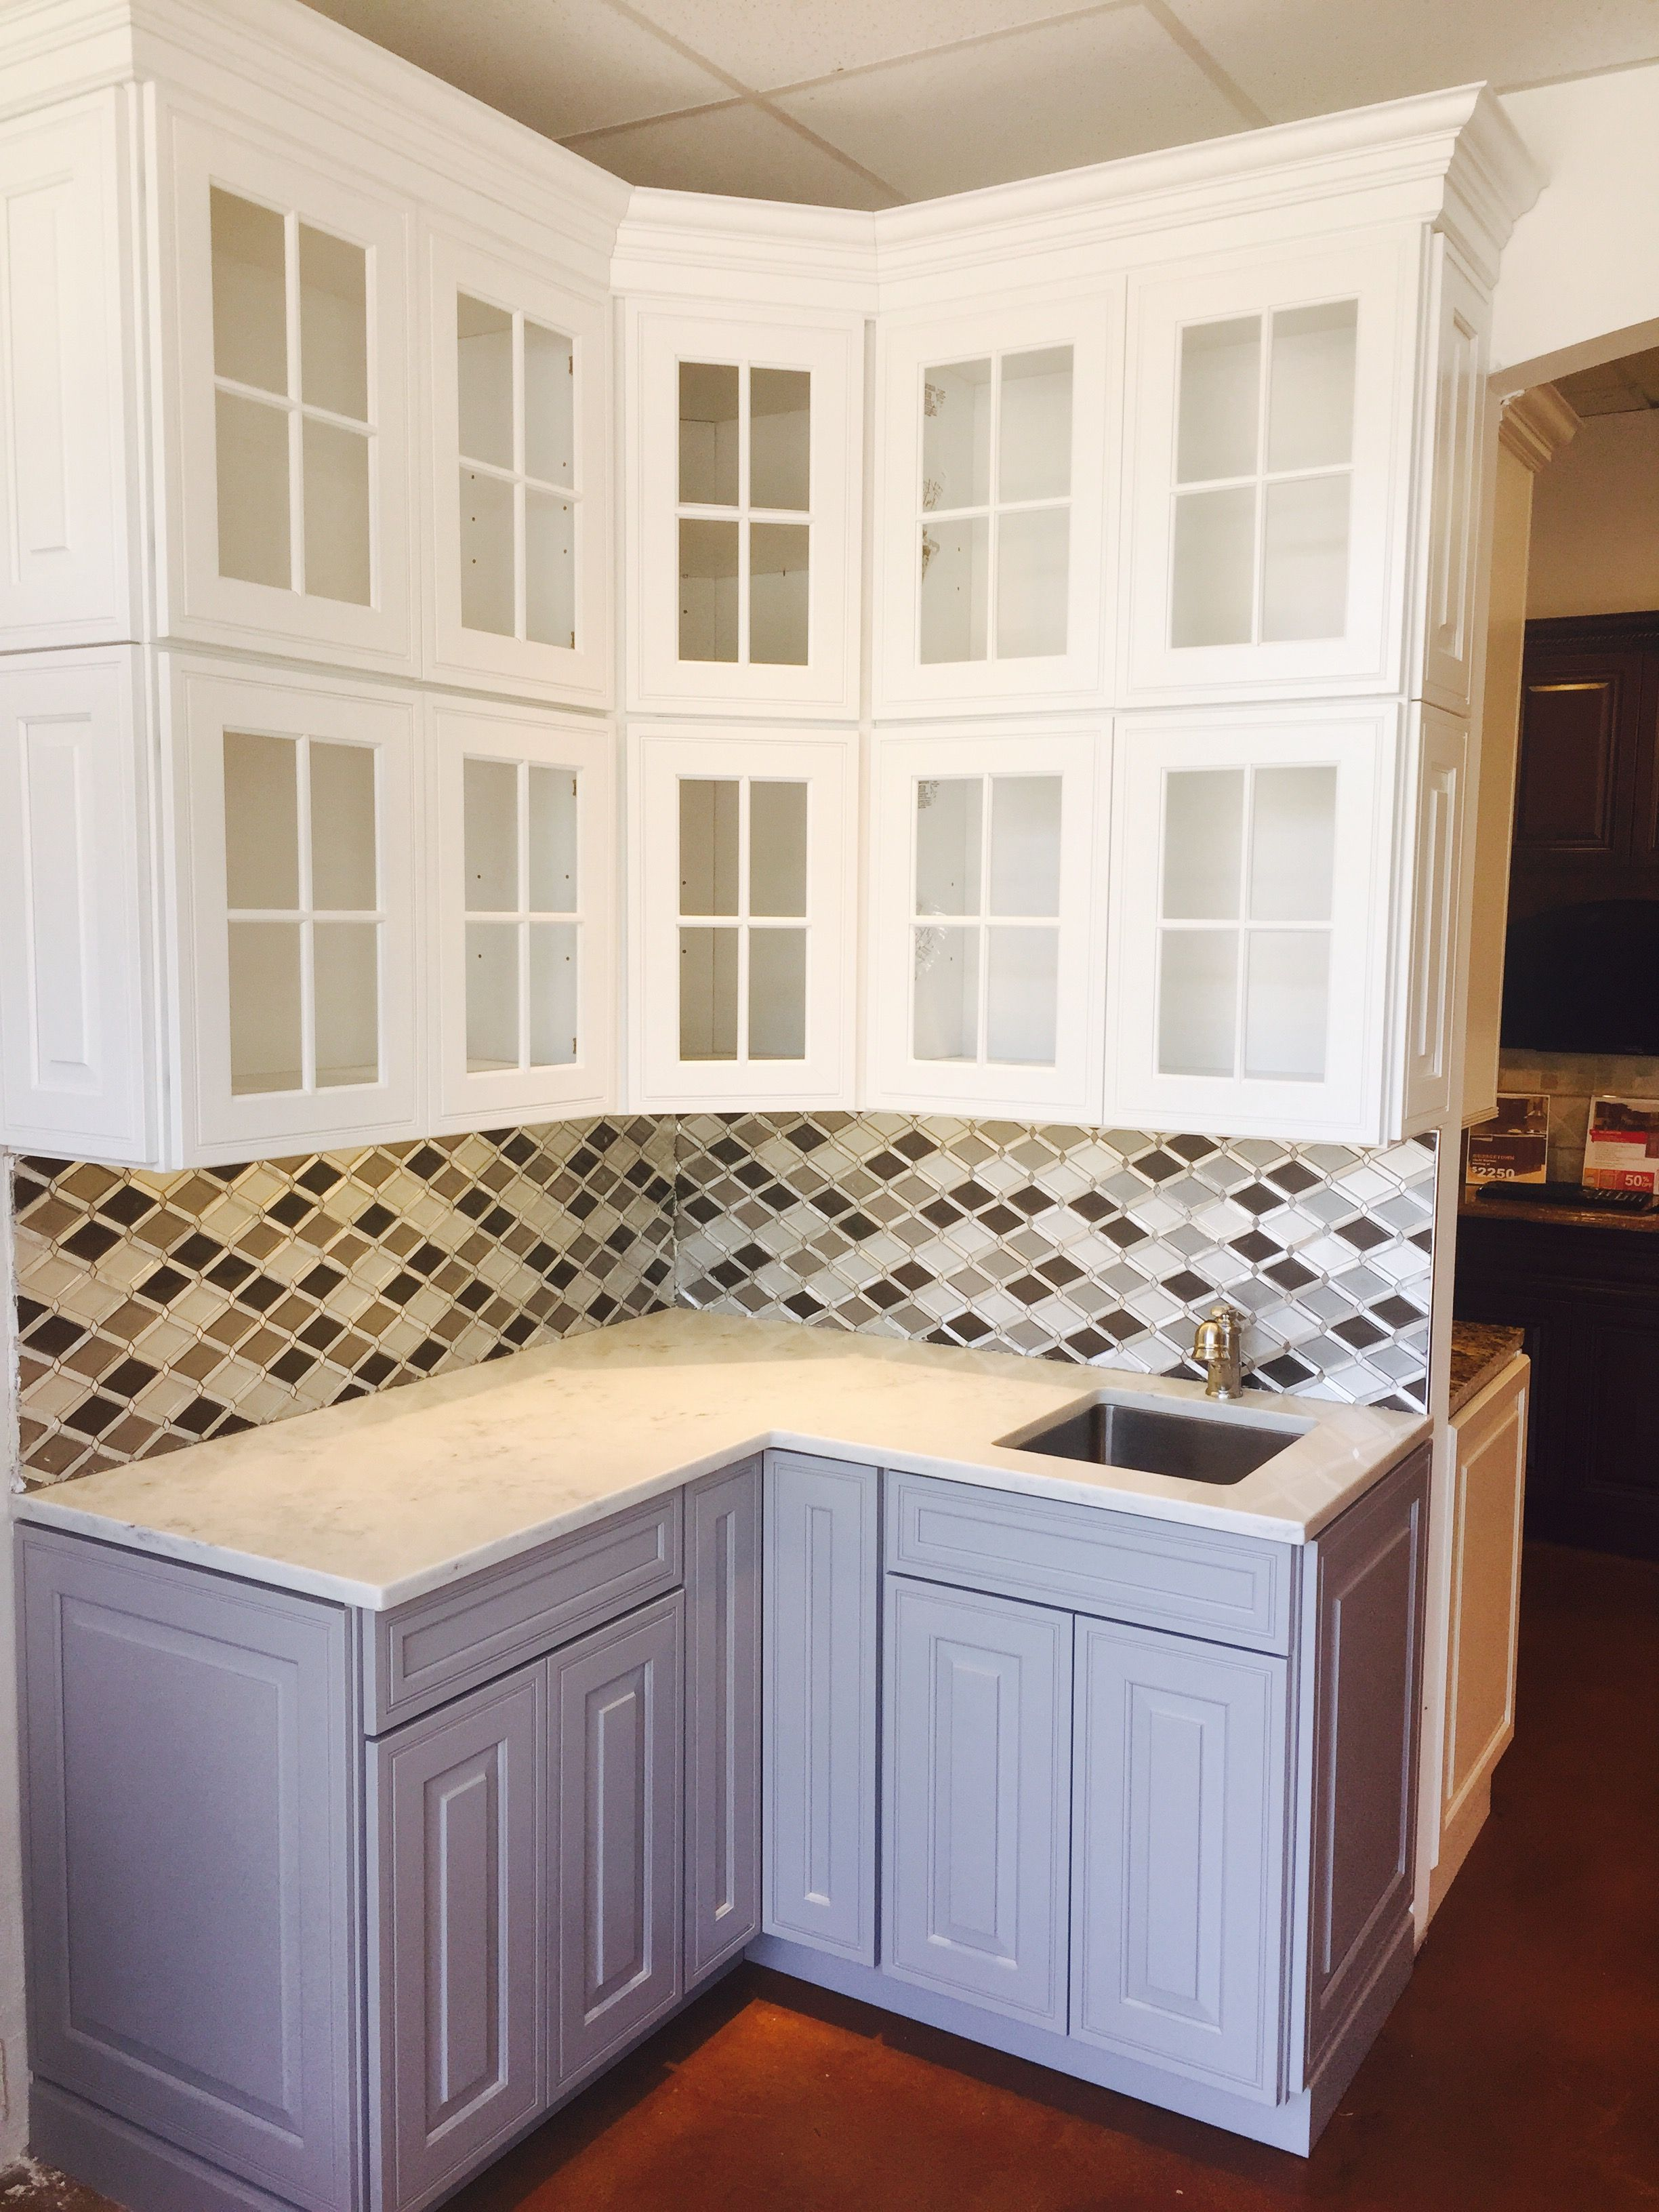 Waypoint maple linen wall cabinets with painted stone base cabinets ...